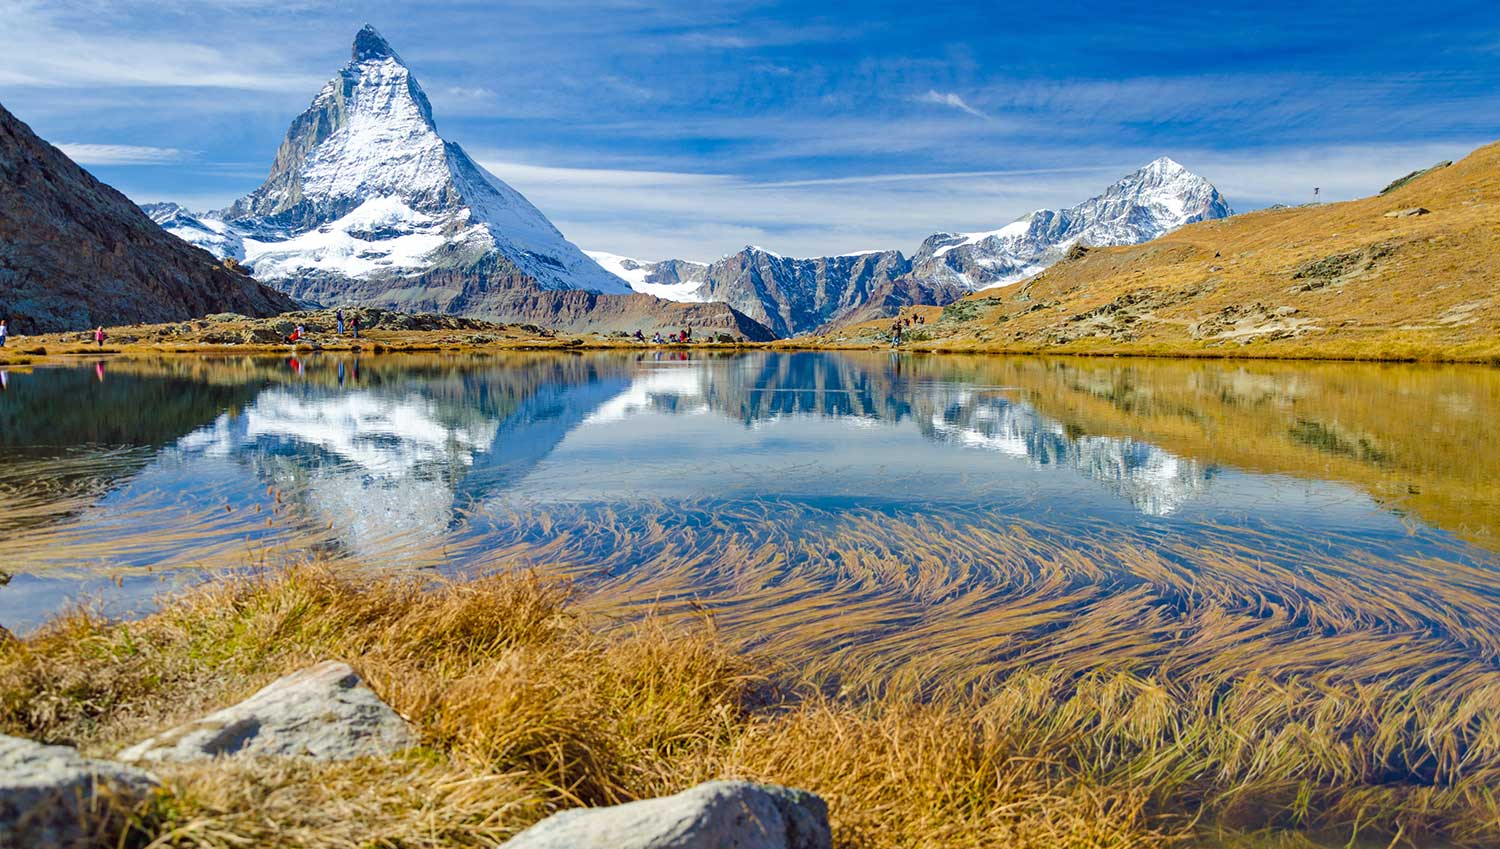 Valais region - 'Valais – carved into your heart in stone' is a slogan which will be familiar to many Swiss pe